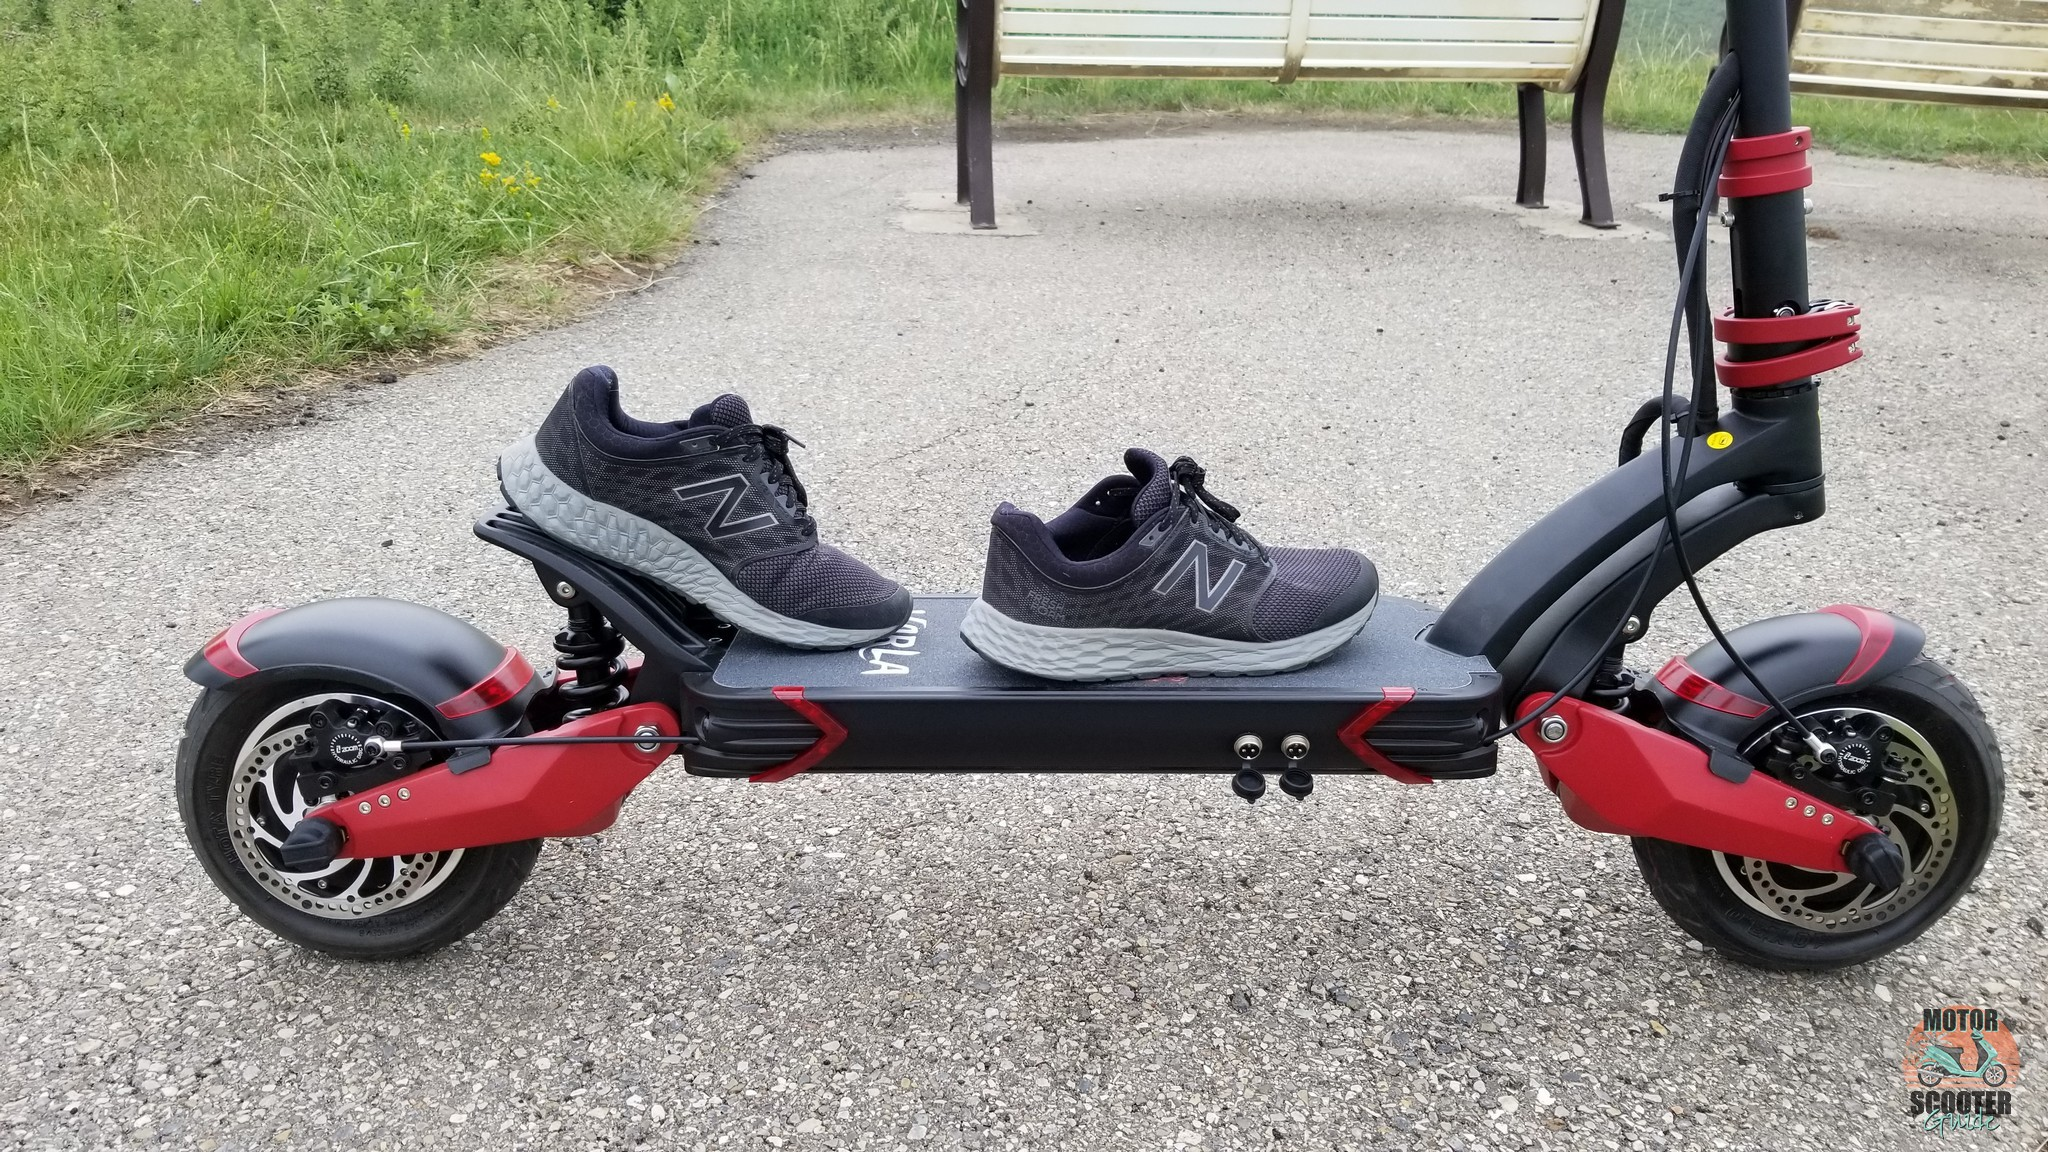 Shoes on the Varla Eagle One scooter simulating riding form